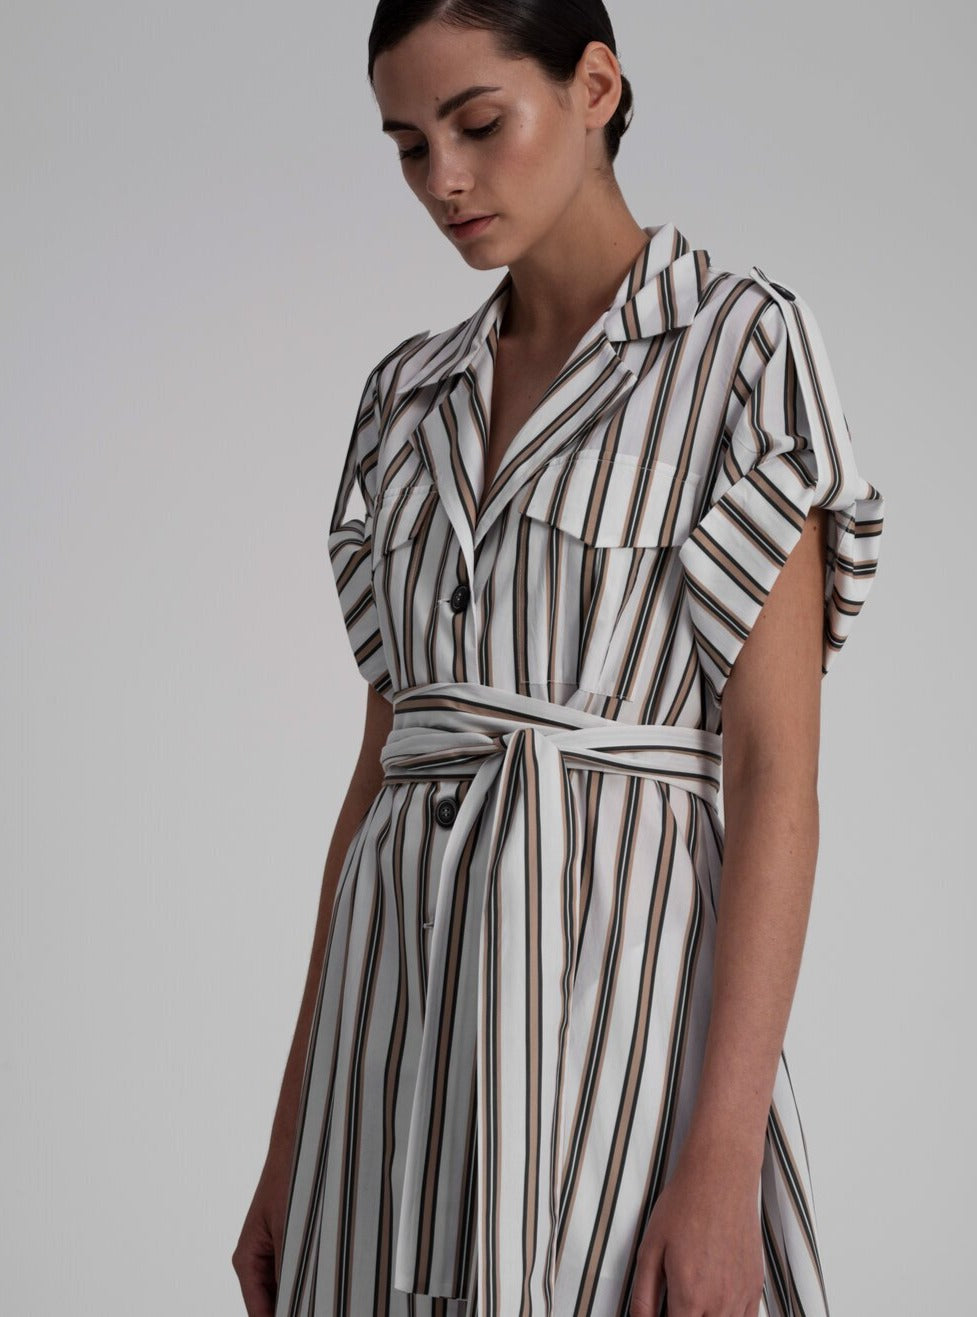 Shirt Dress in White Stripes